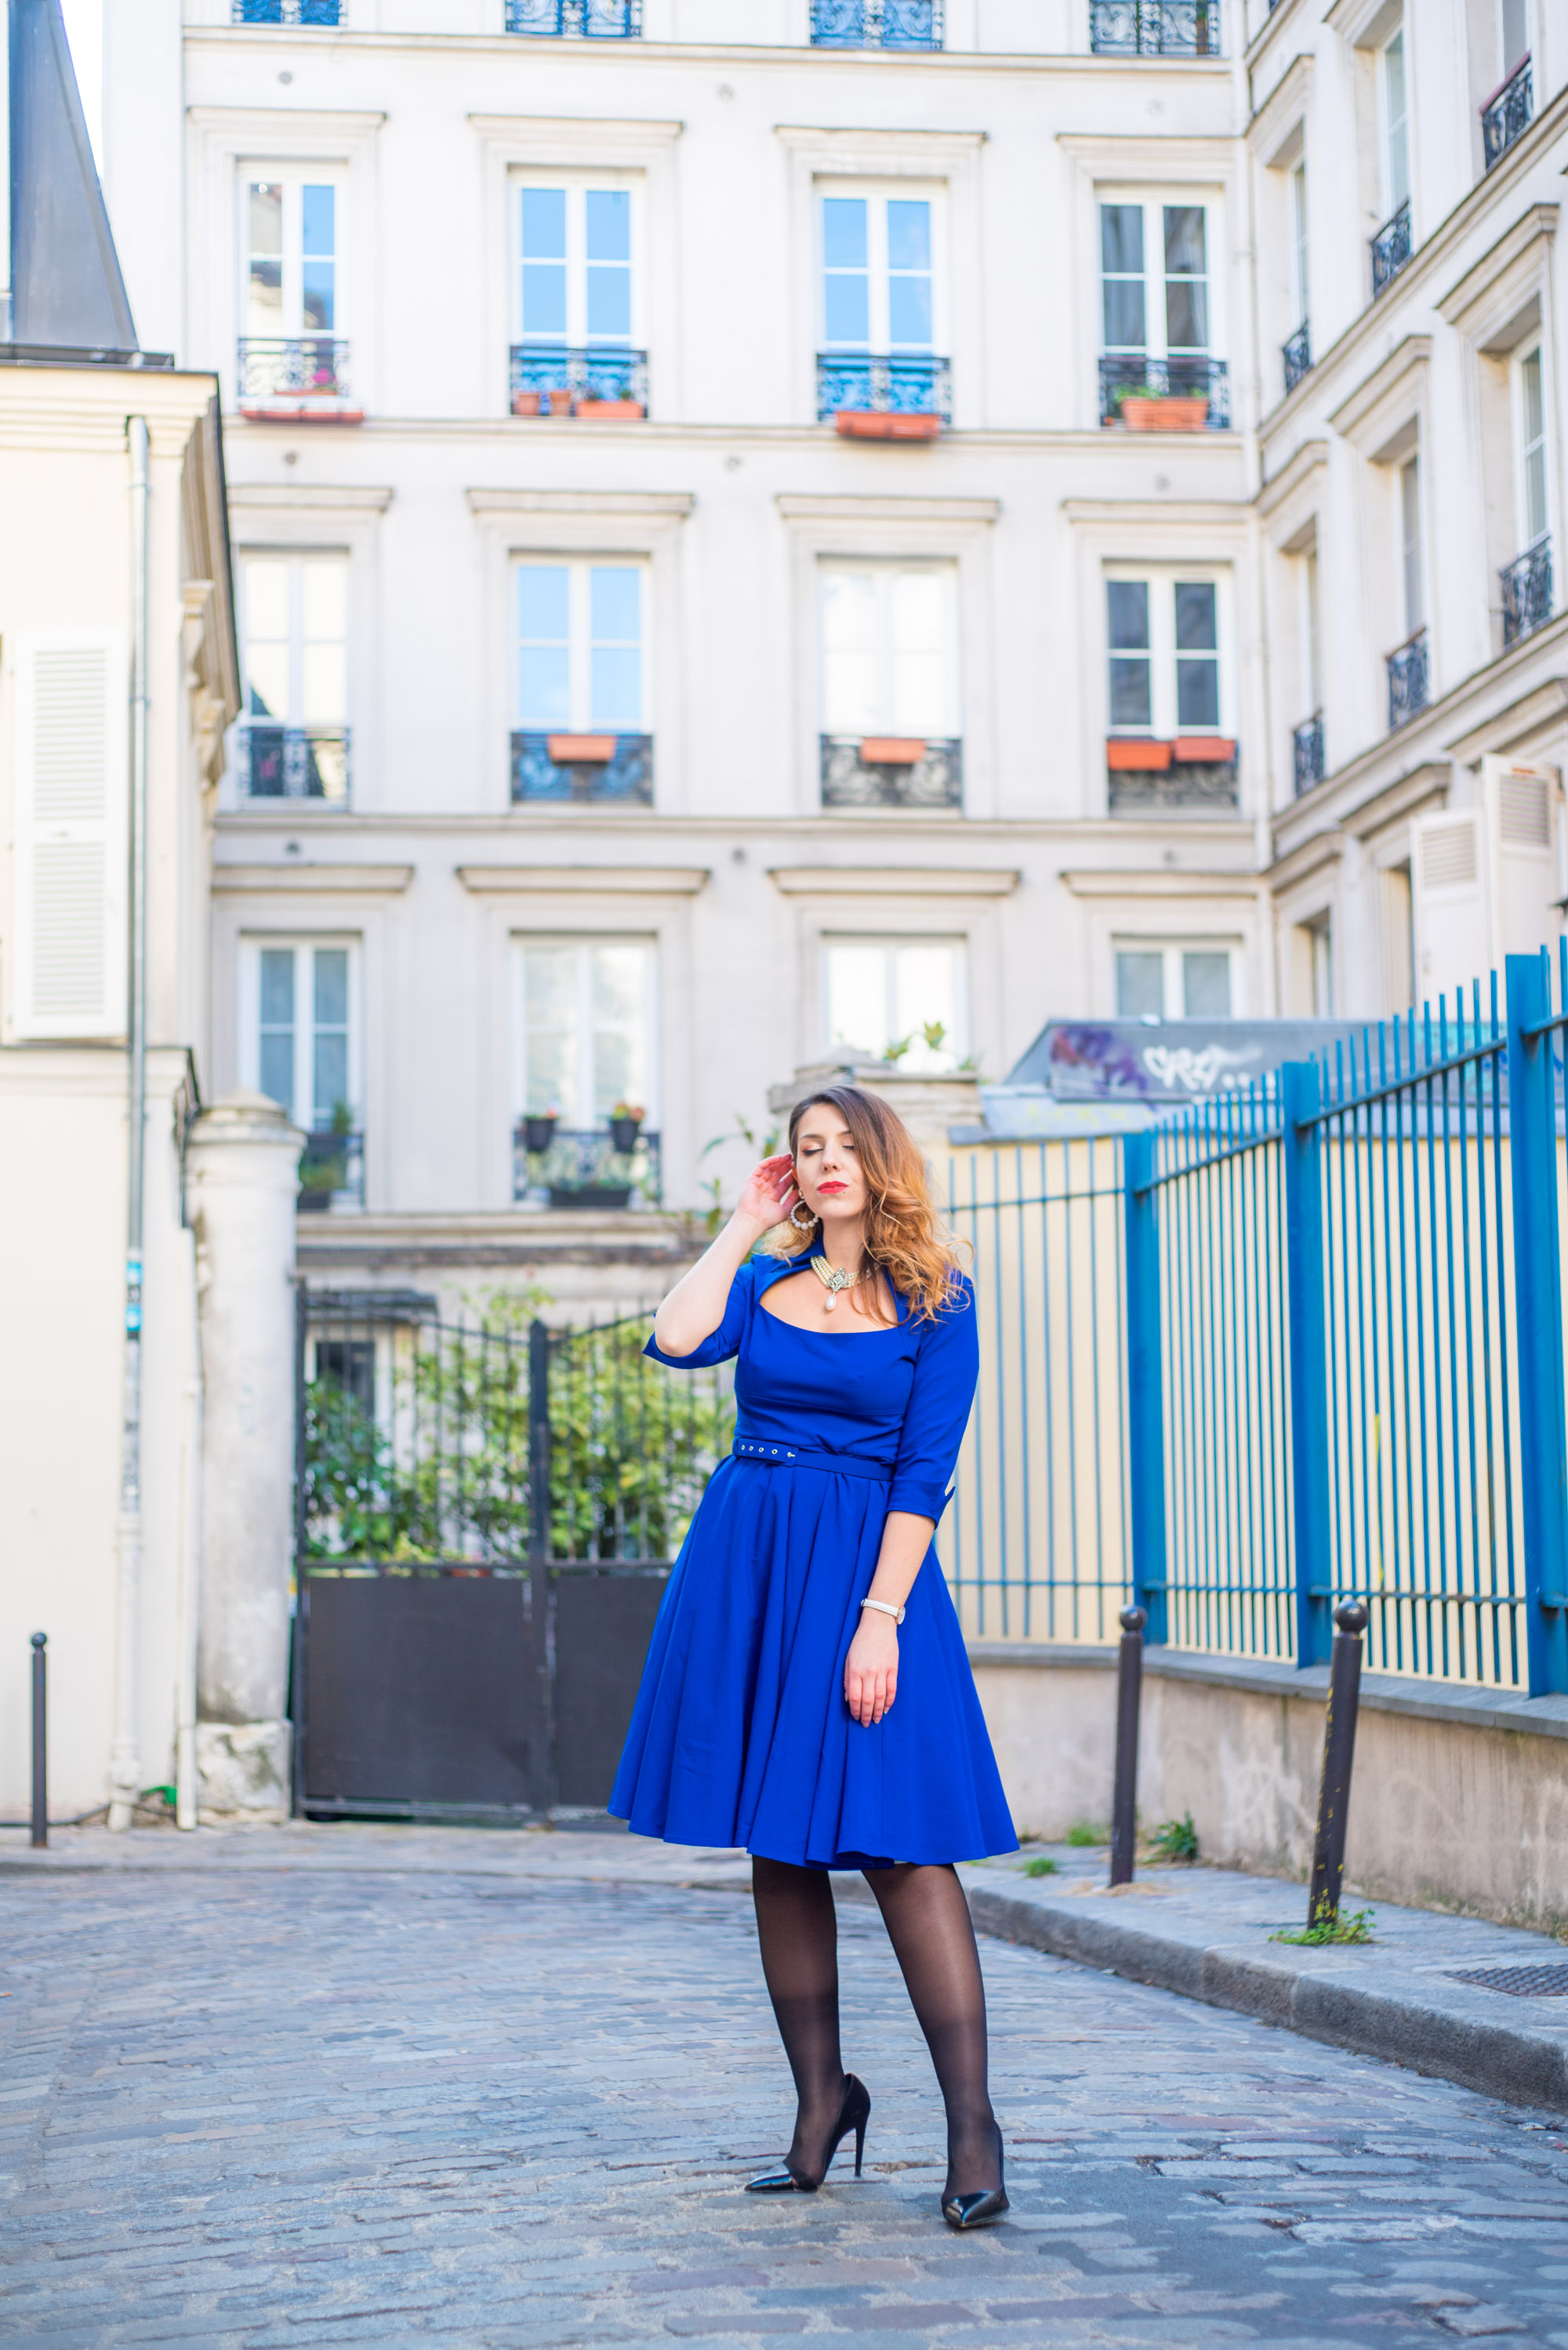 Robe pin up bleu roi Monmartre Paris Charlie Sugar Town